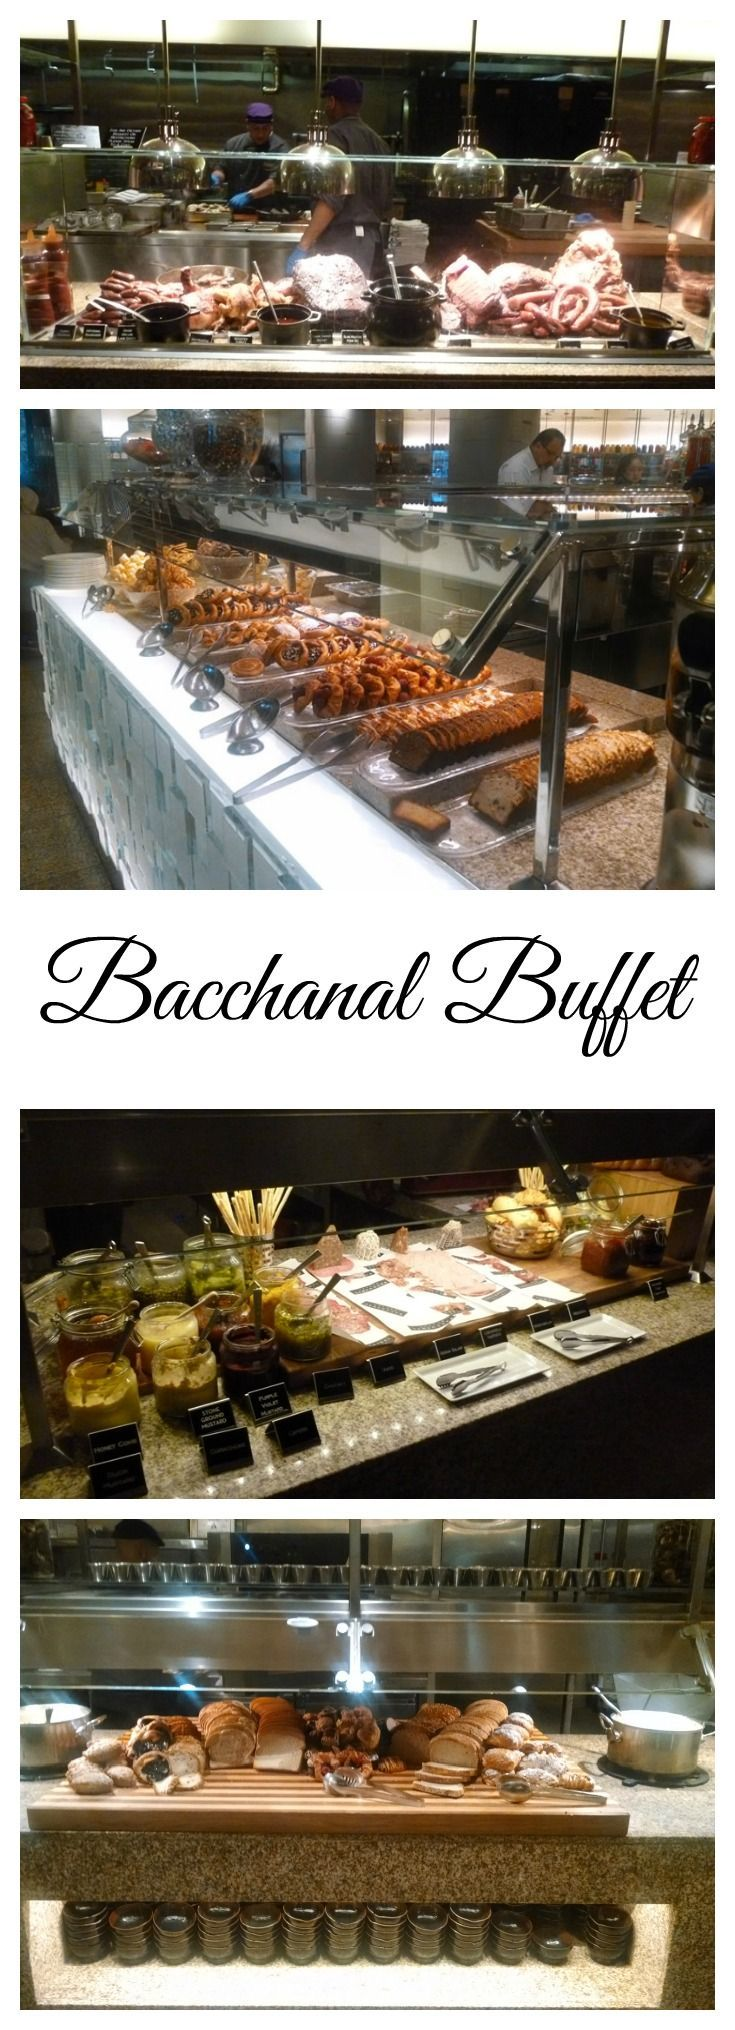 Bacchanal Buffet Prices, Hours, & Reviews Bacchanal